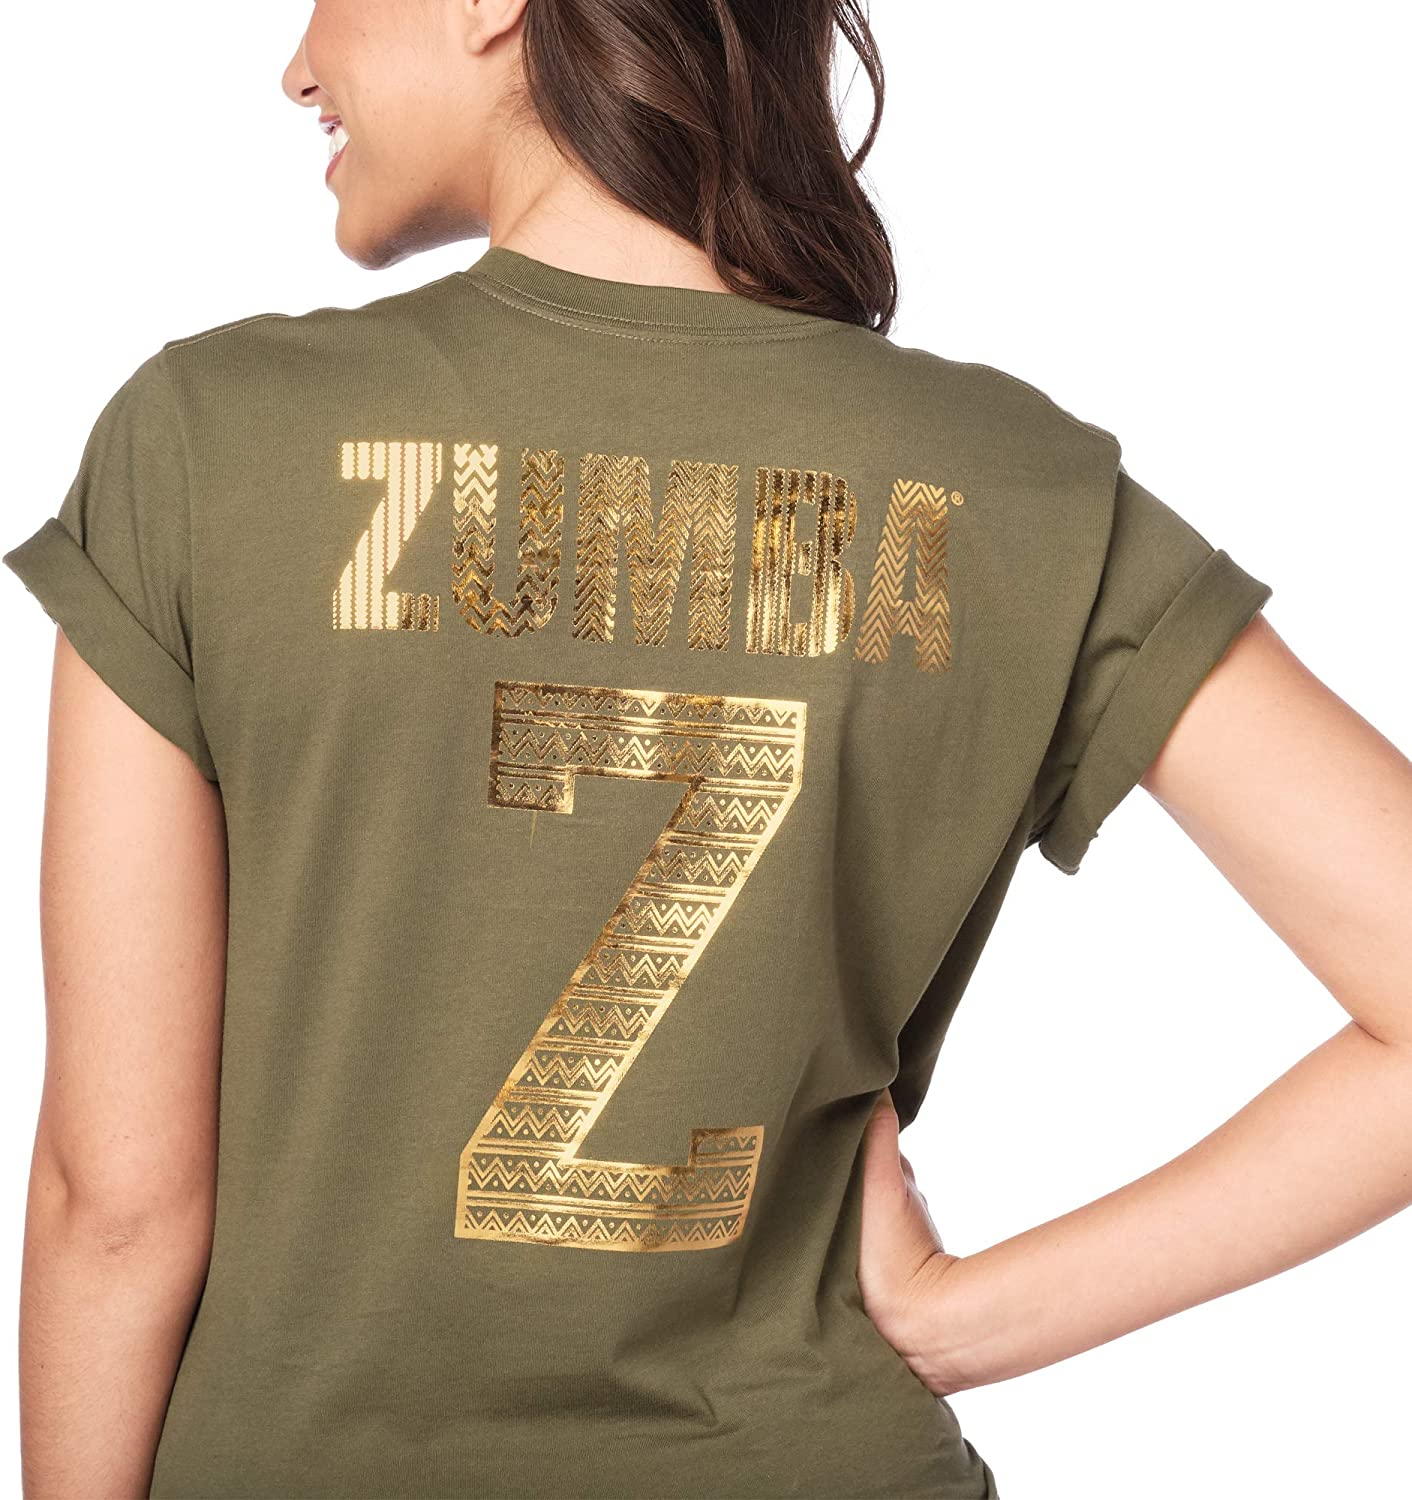 Seaweed M//L Zumba Loose Fitting Dance Fitness Graphic Tees Athletic Workout Top for Women